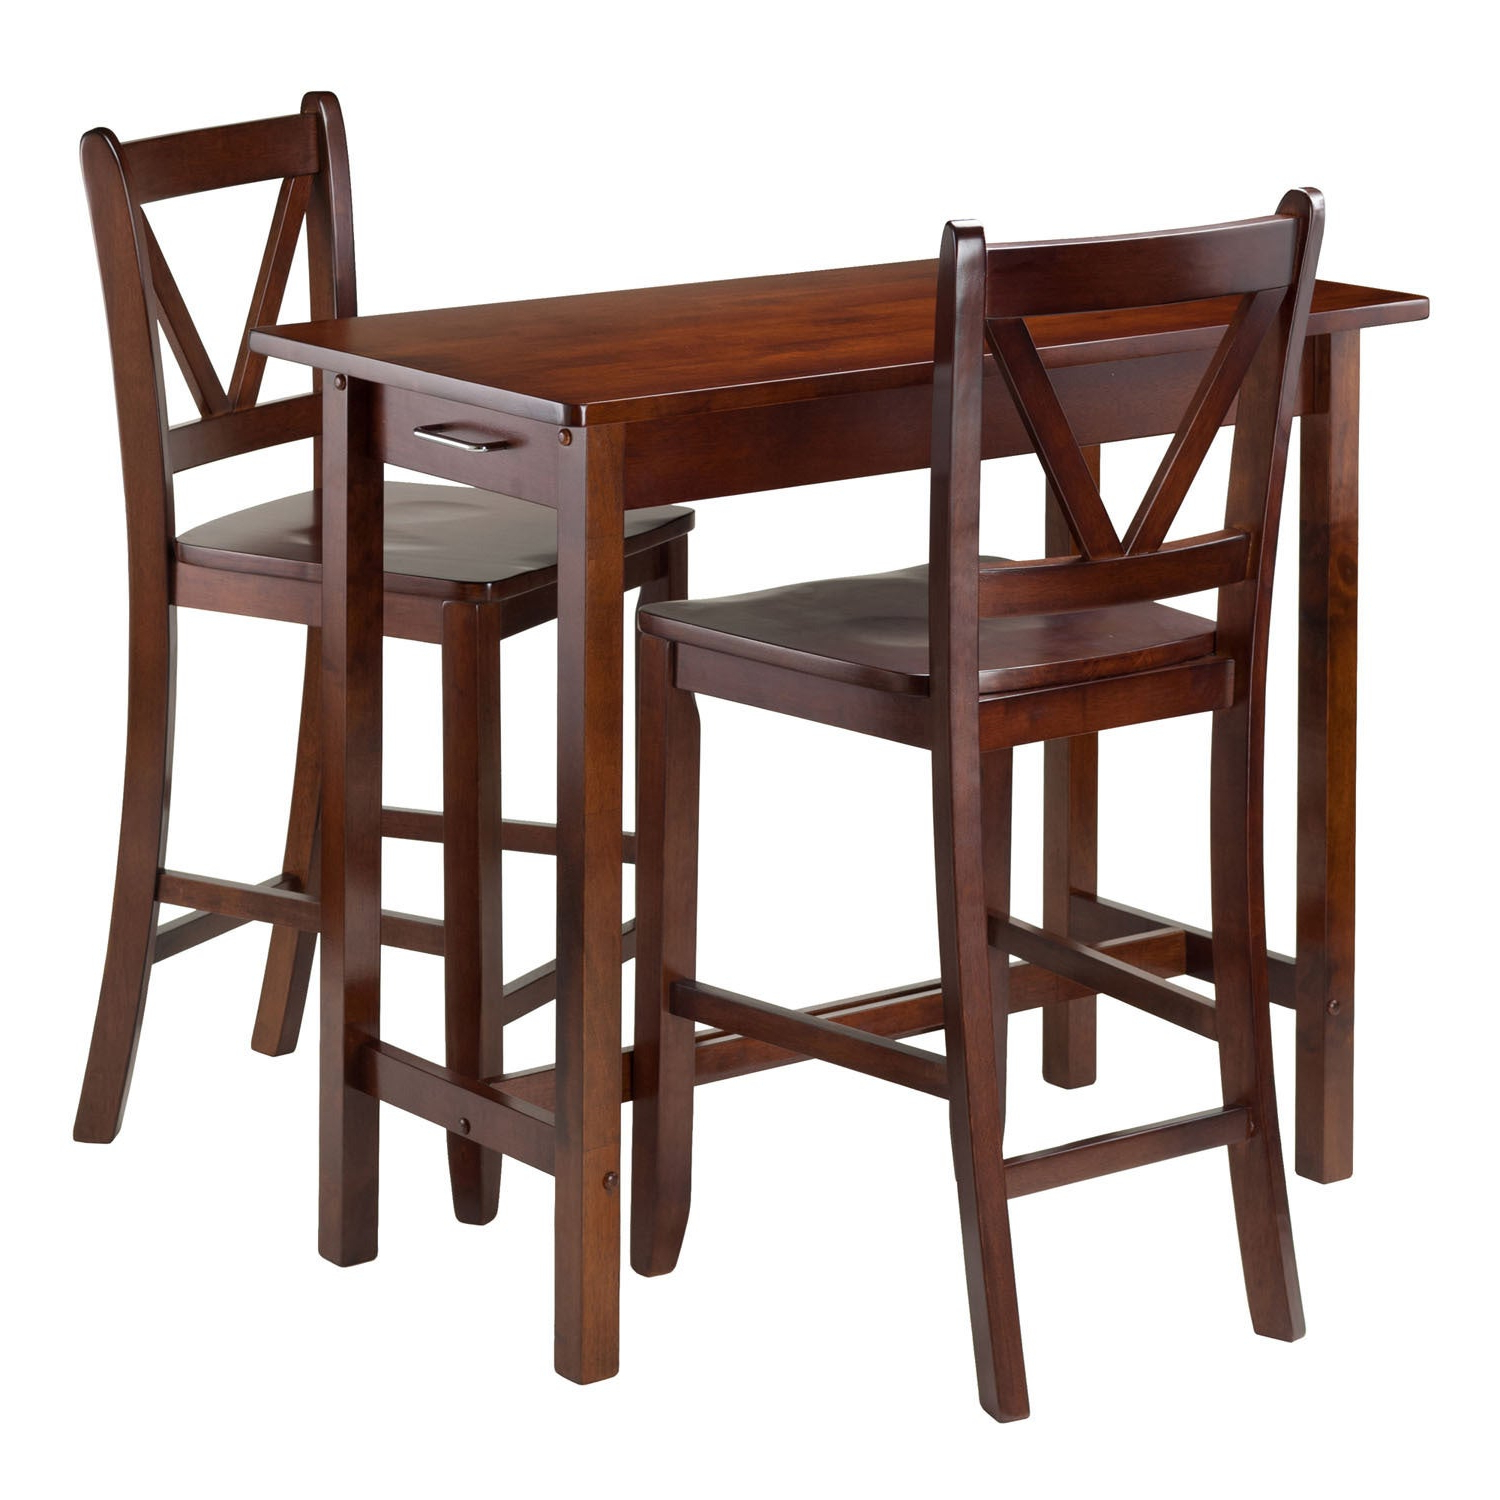 Winsome 3 Piece Counter Height Dining Sets With Regard To 2017 Winsome 3 Piece Island Kitchen Table With 2 V Back Counter Stools (View 12 of 20)